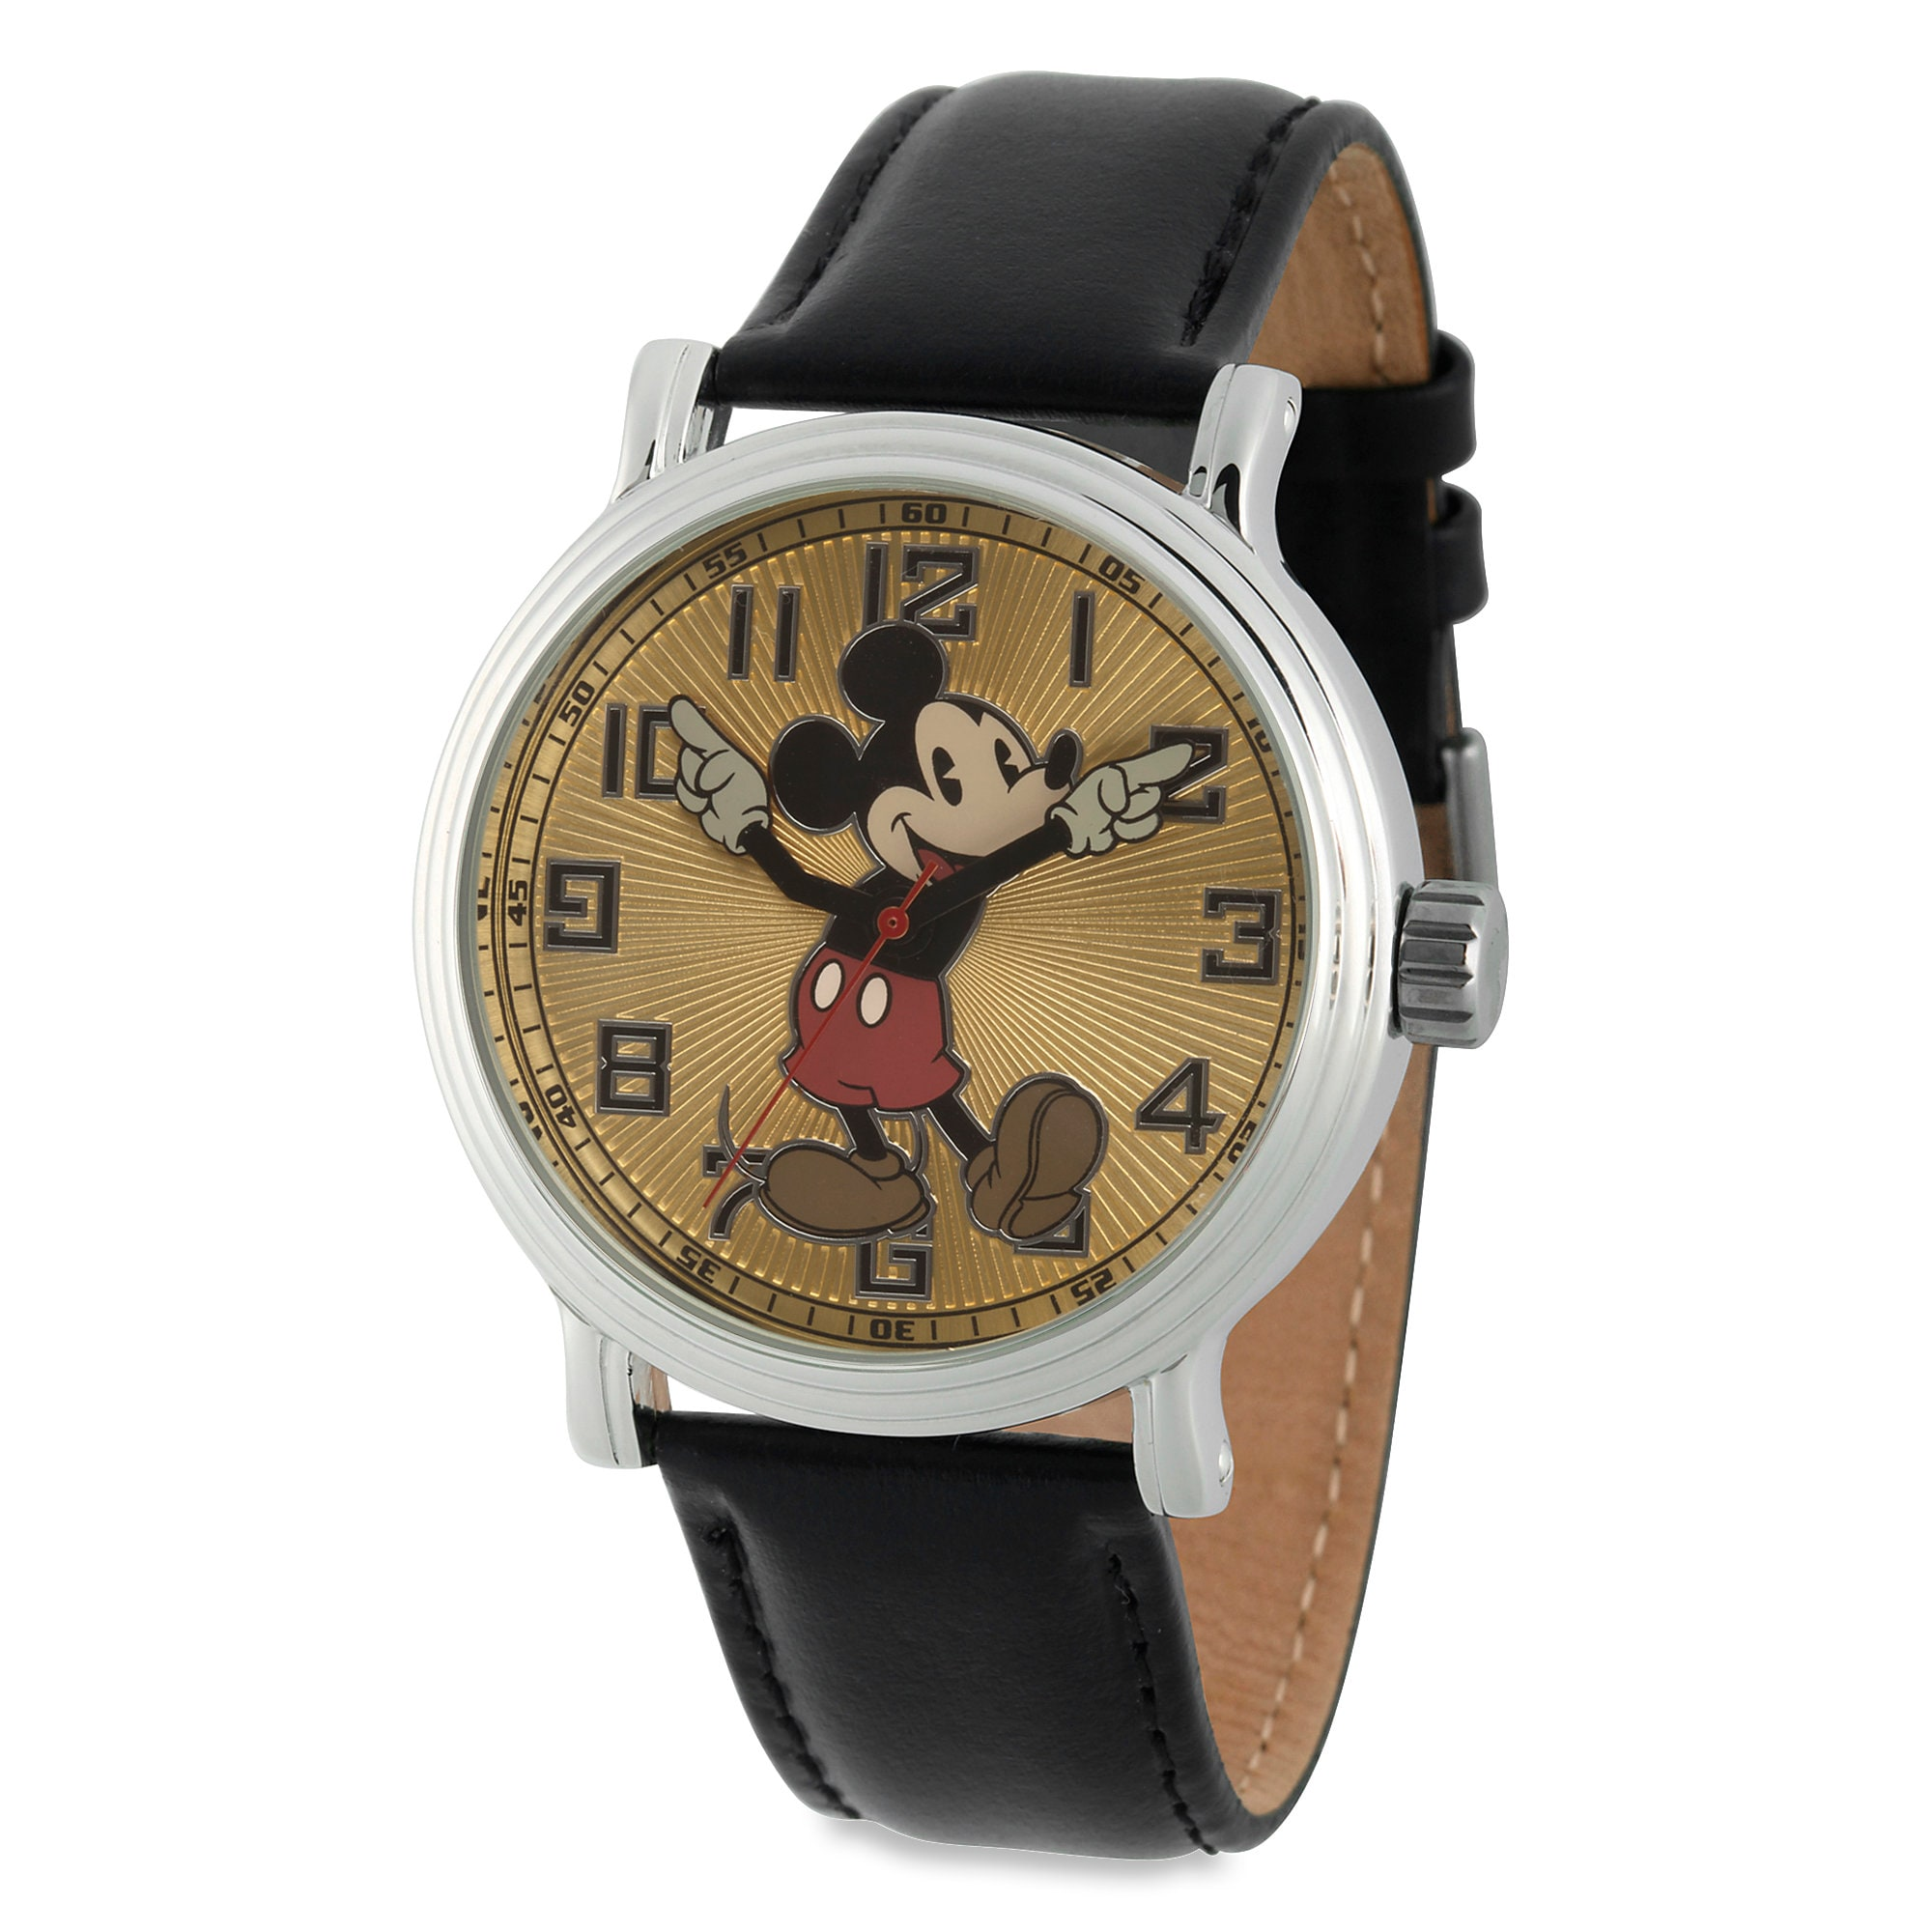 Vintage Mickey Mouse Watch - Adults